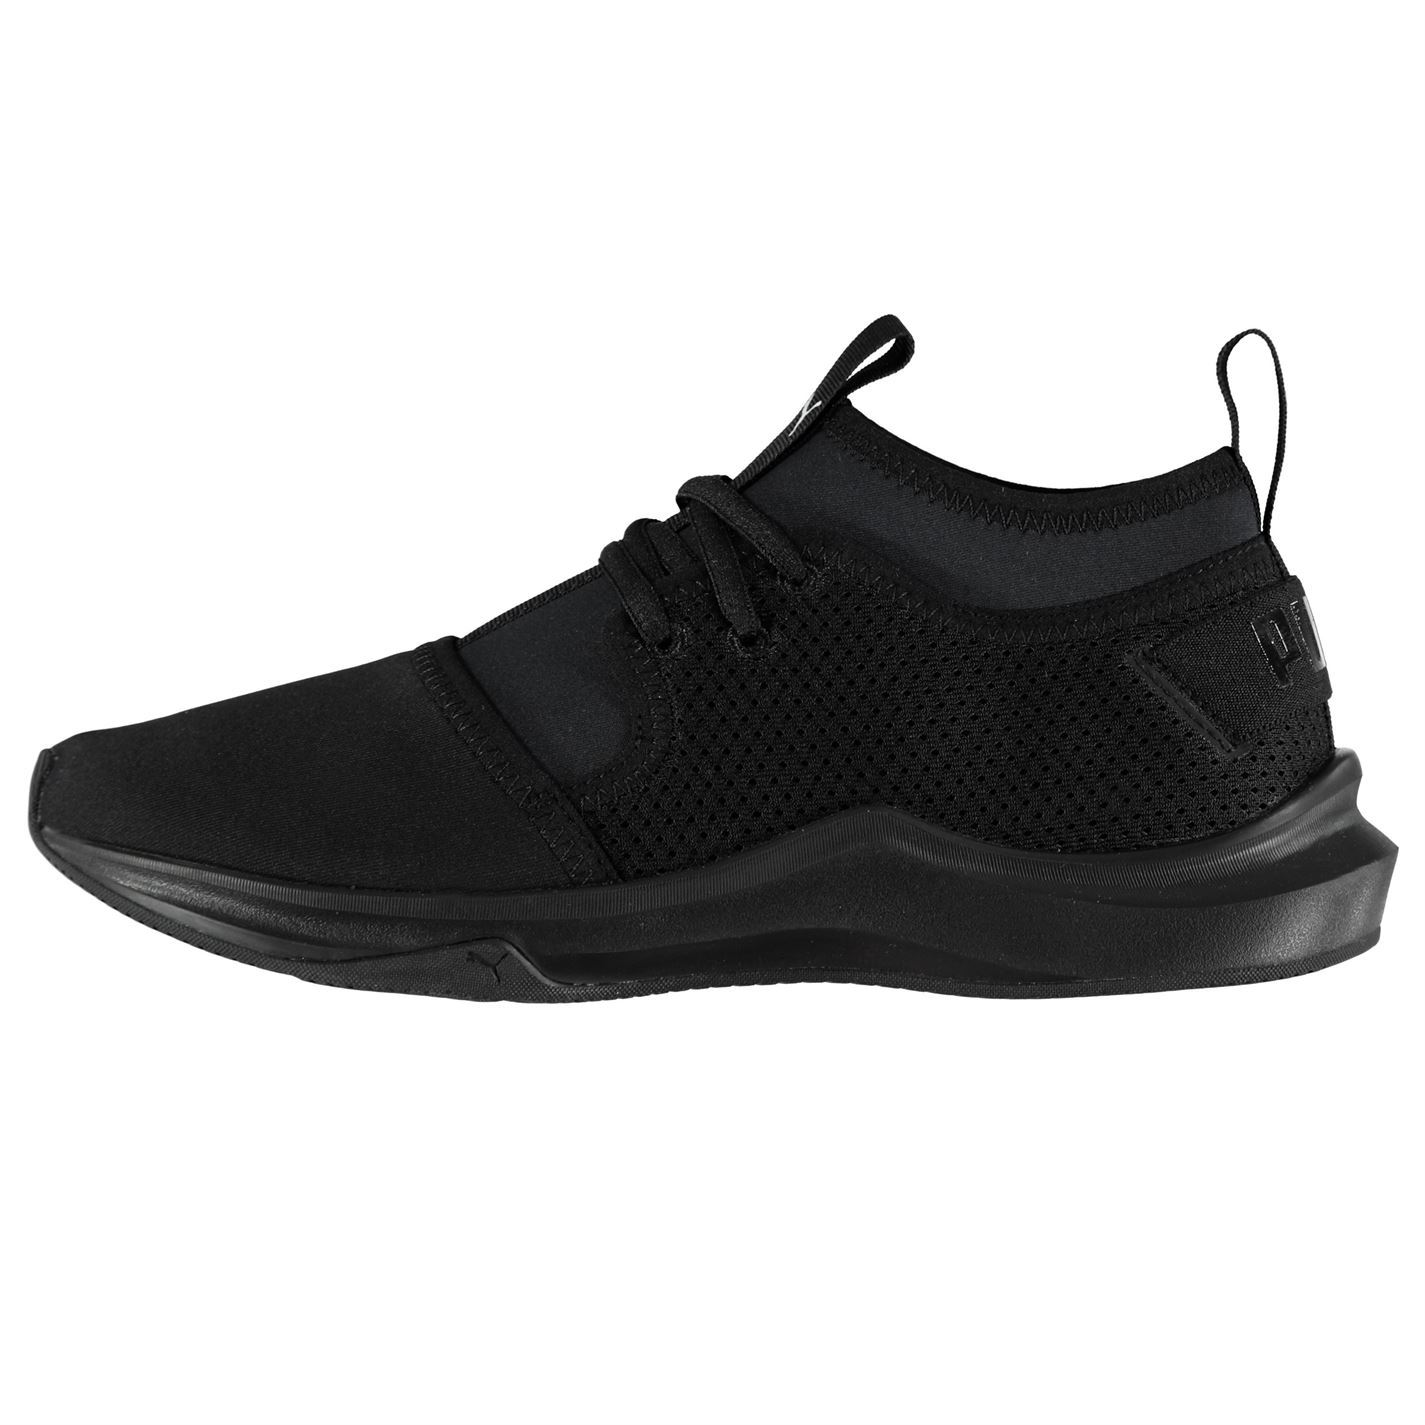 45341547ed Details about Puma Phenom Running Shoes Womens Black Run Jogging Trainers  Sneakers